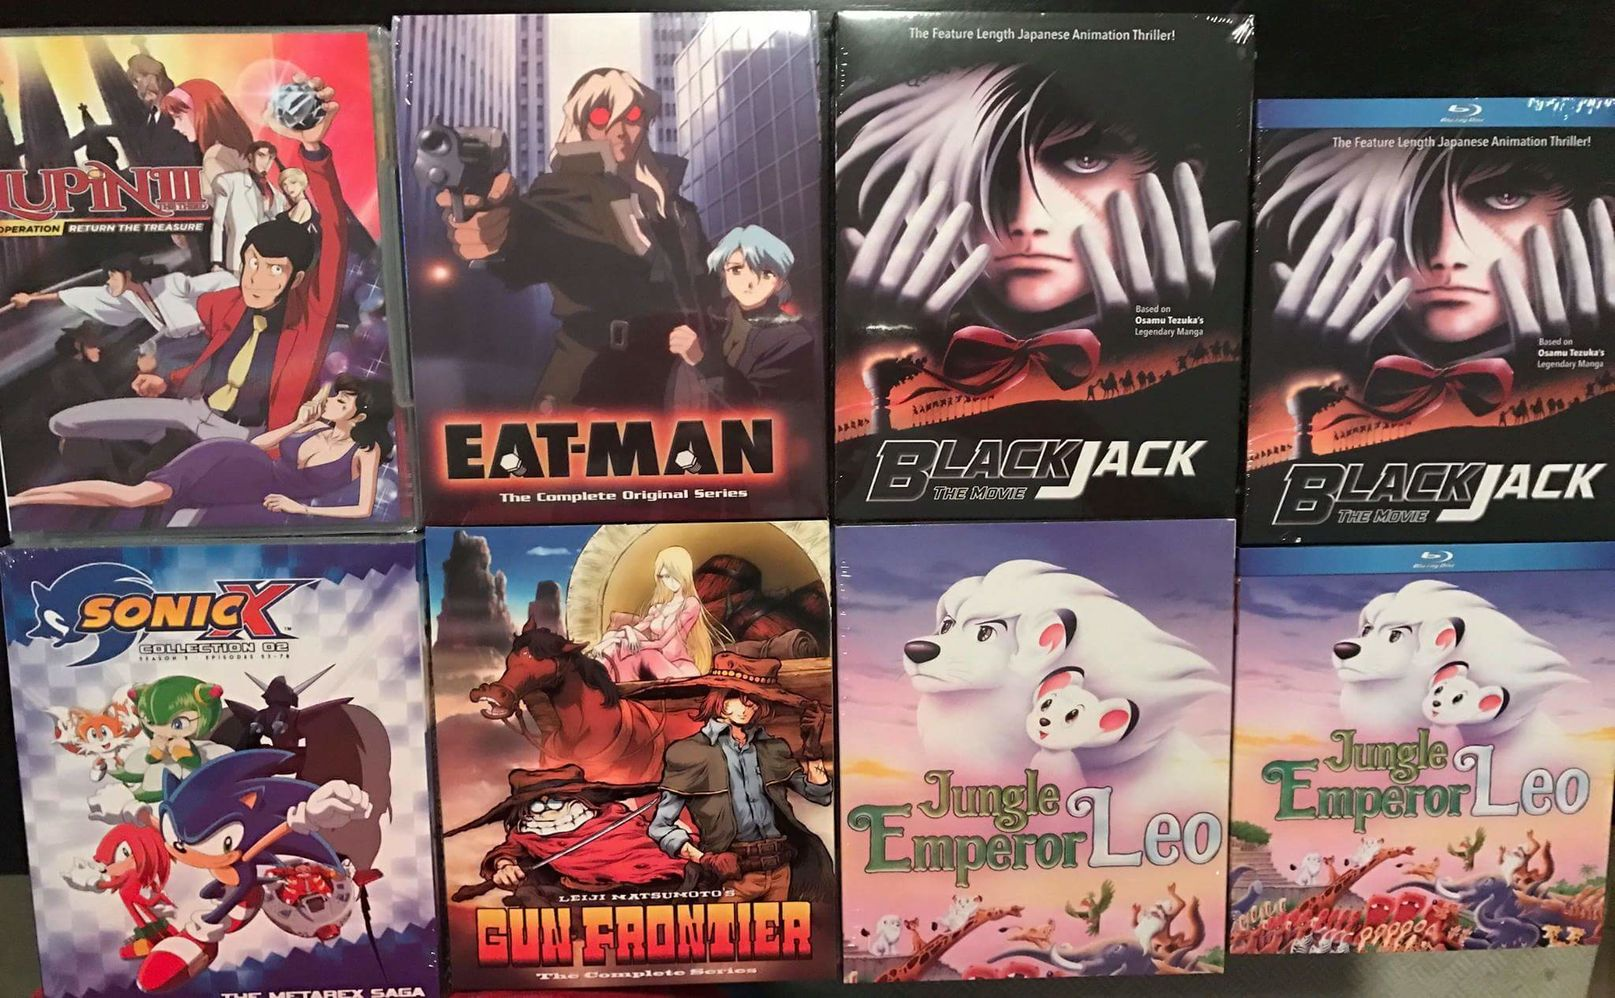 discotek-early-december-update